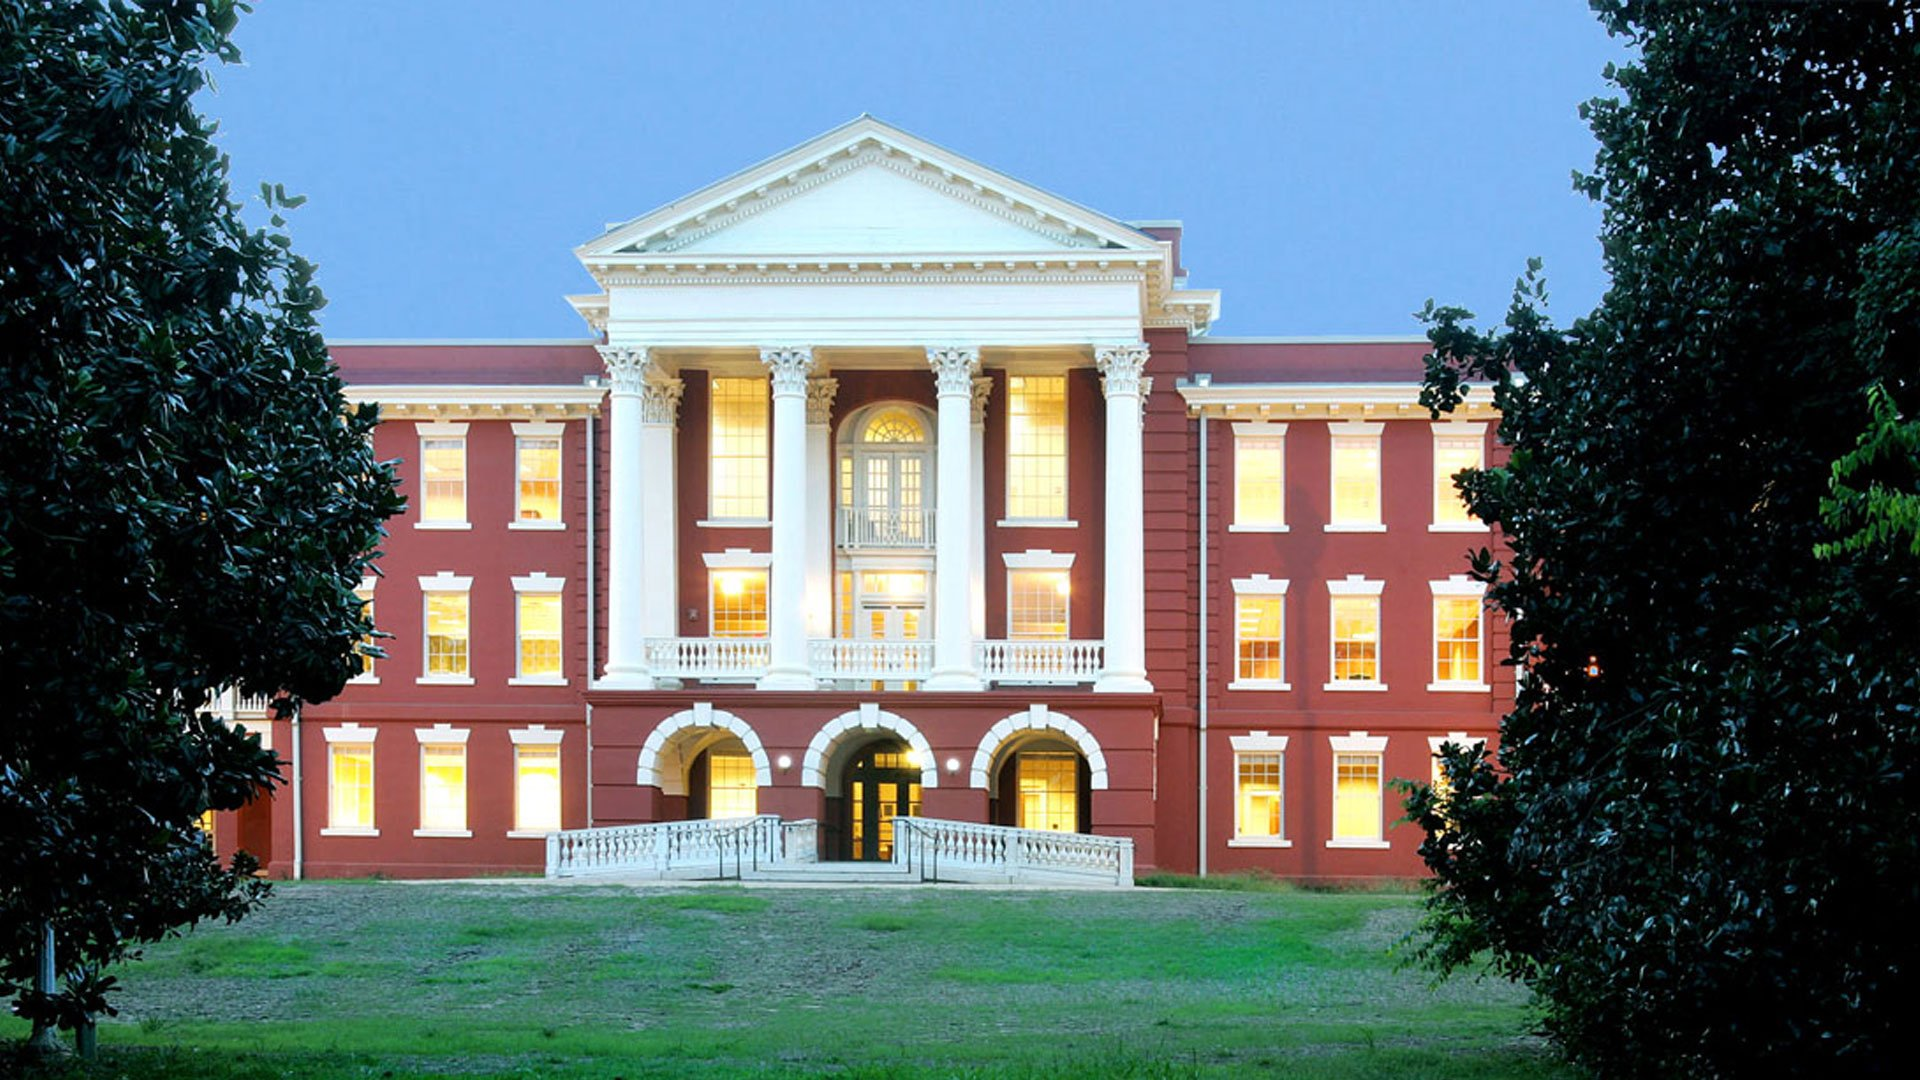 SC School for the Deaf and the Blind, Walker Hall